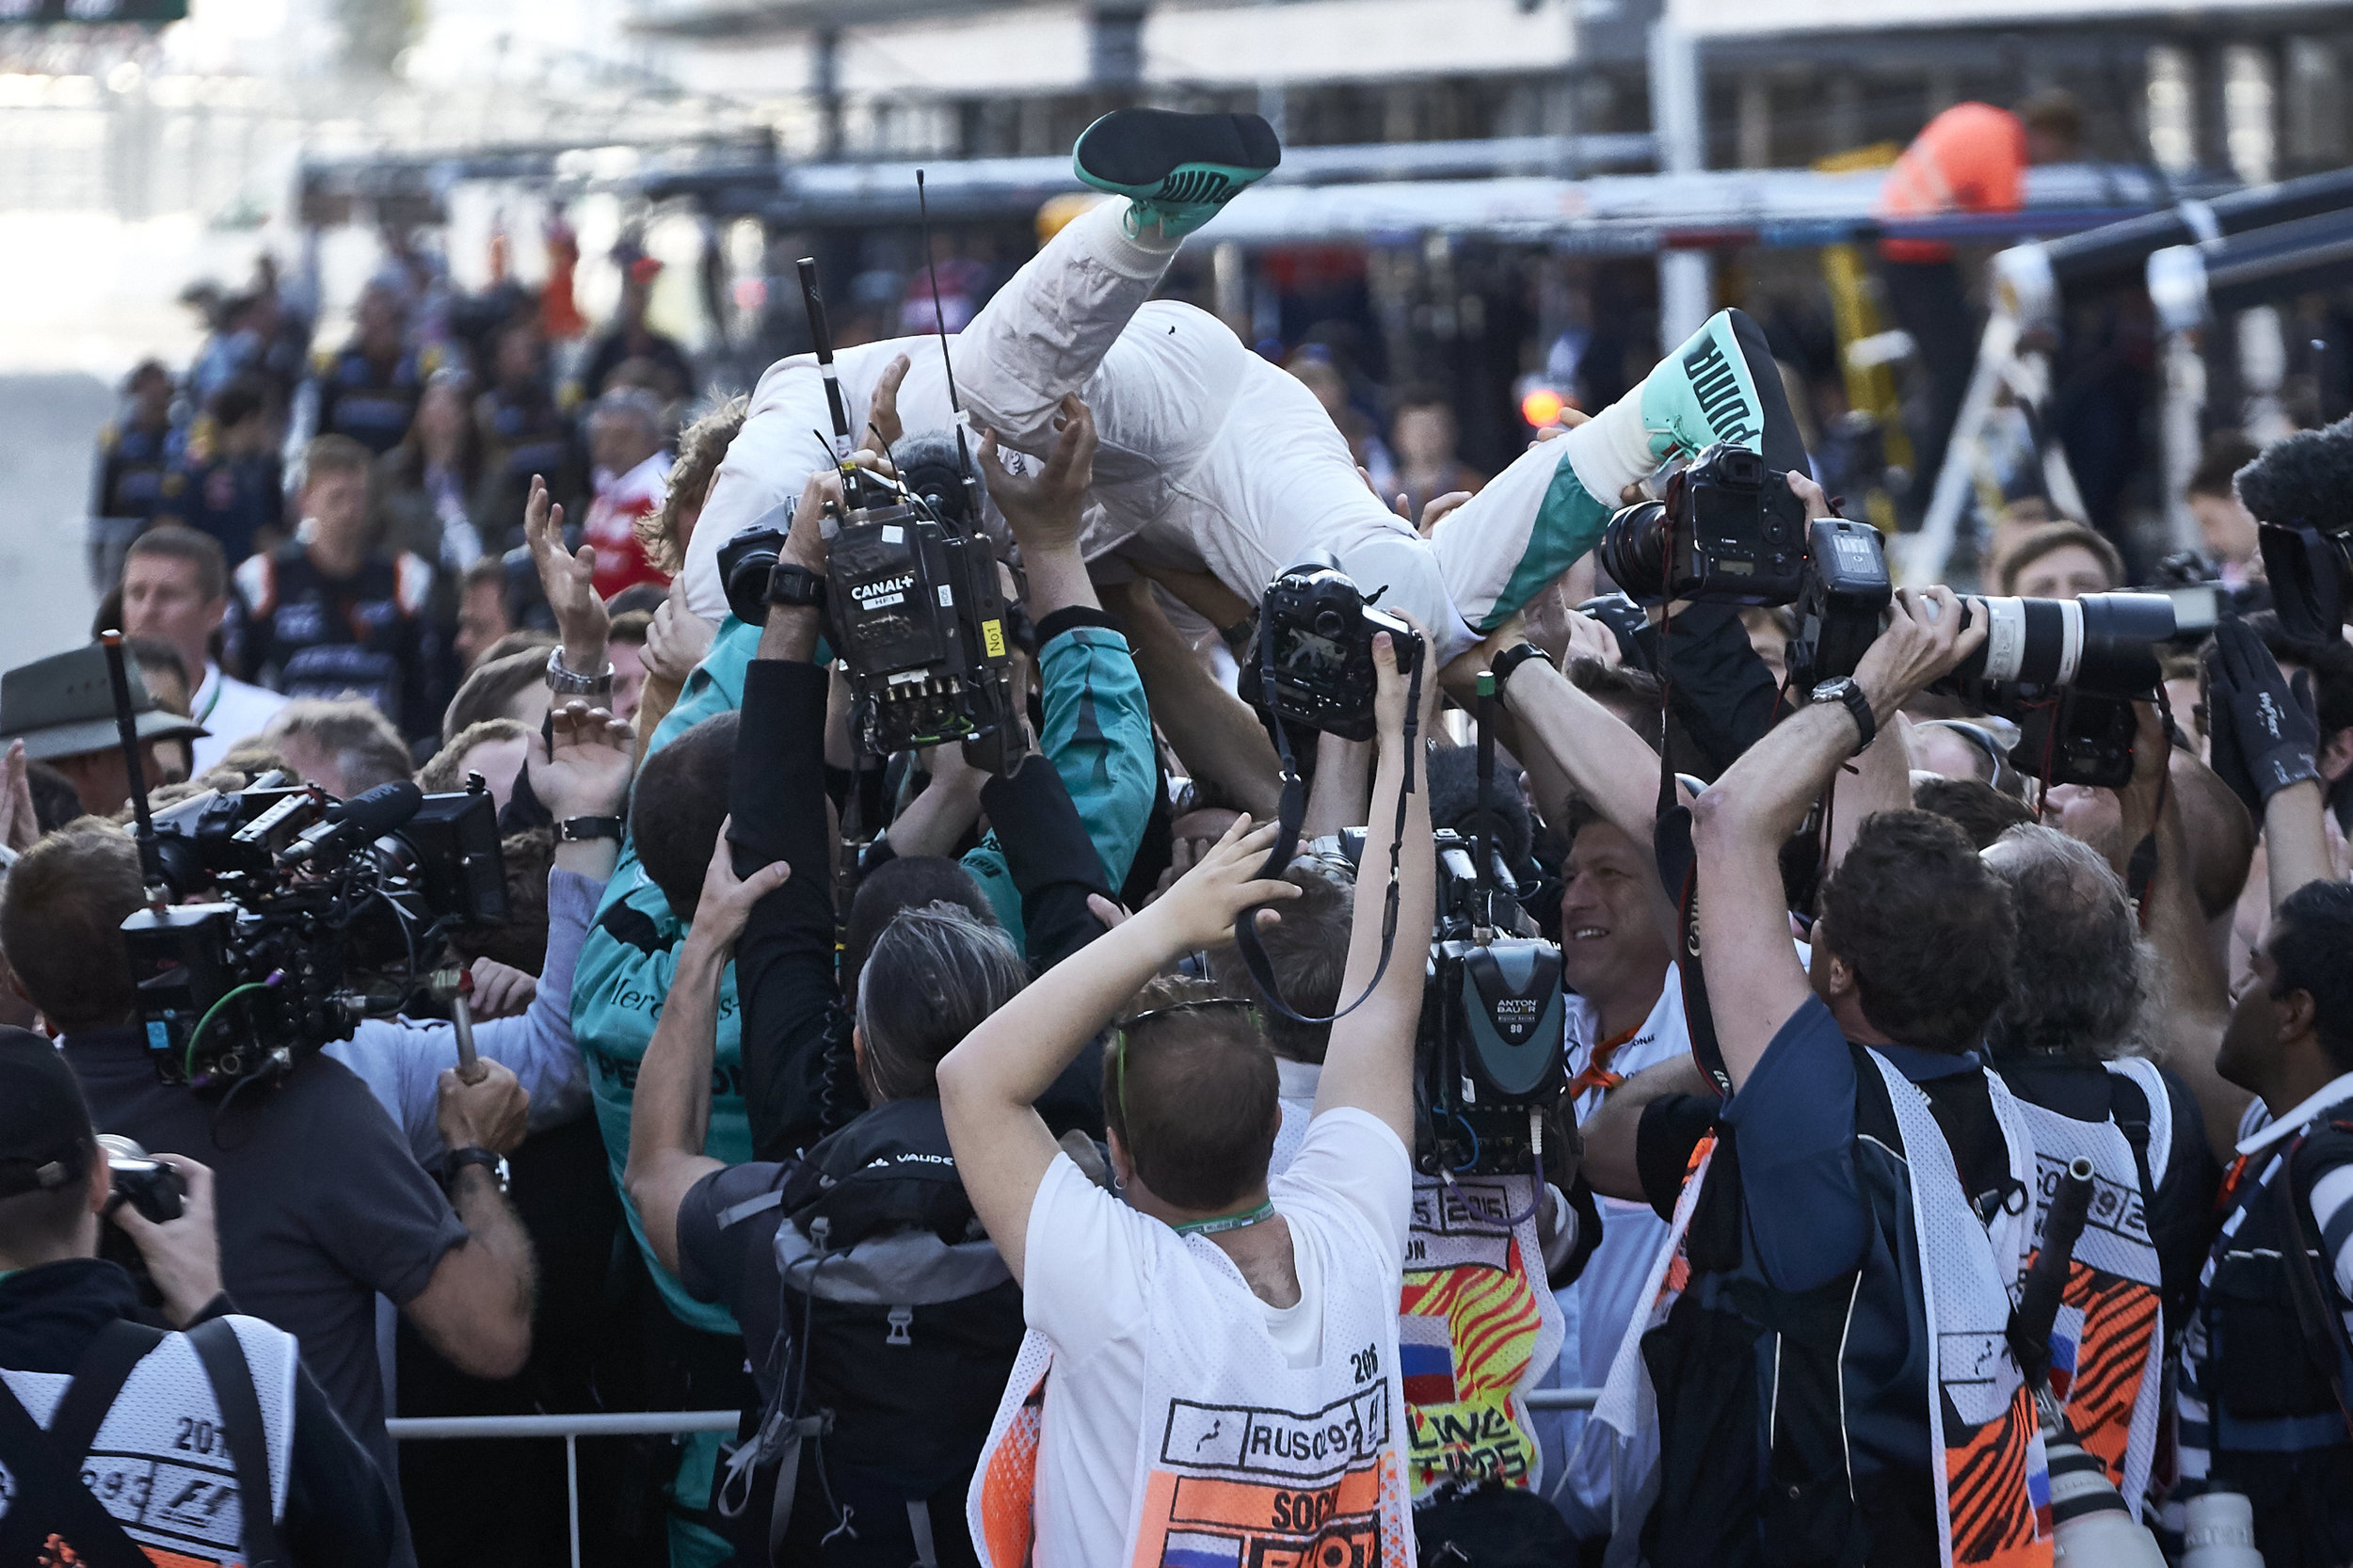 Rosberg celebrates another win in Russia by going mechanic surfing. (Pic: Mercedes)